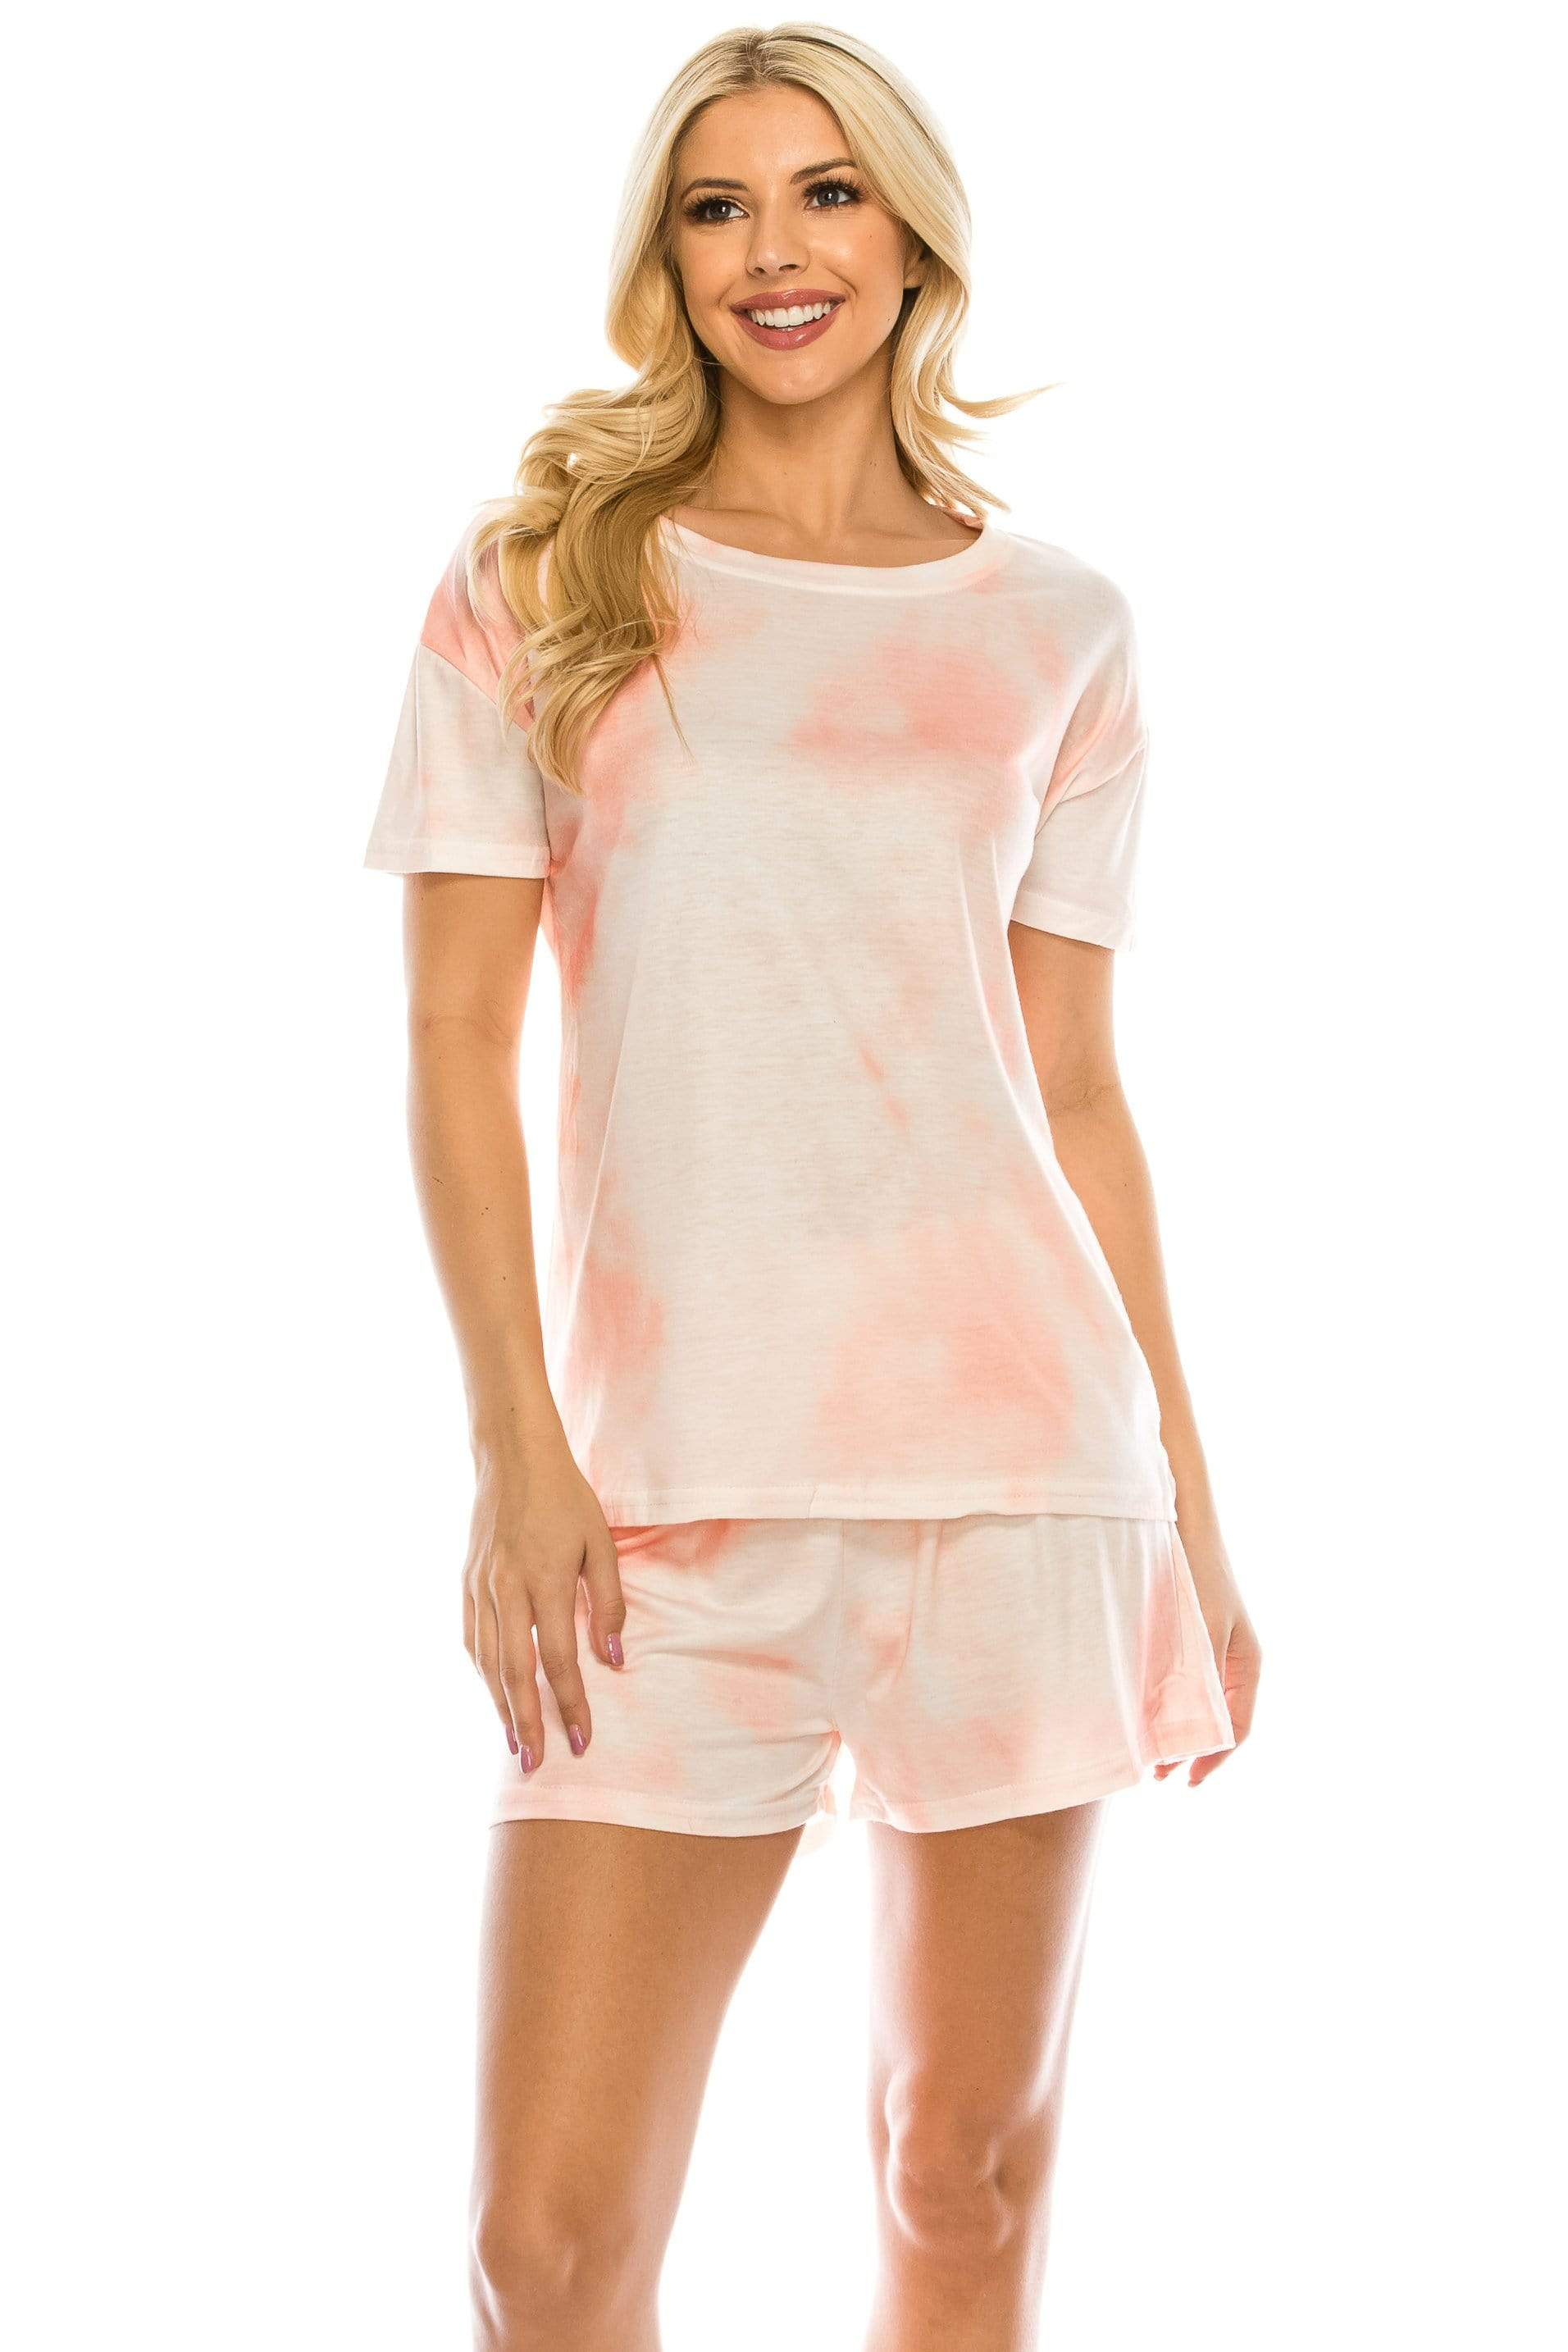 DAILYHAUTE WOMEN LOUNGE SET MULTI PINK / S Haute Edition Tie Dye T-Shirt and Shorts Matching Lounge Set with Plus